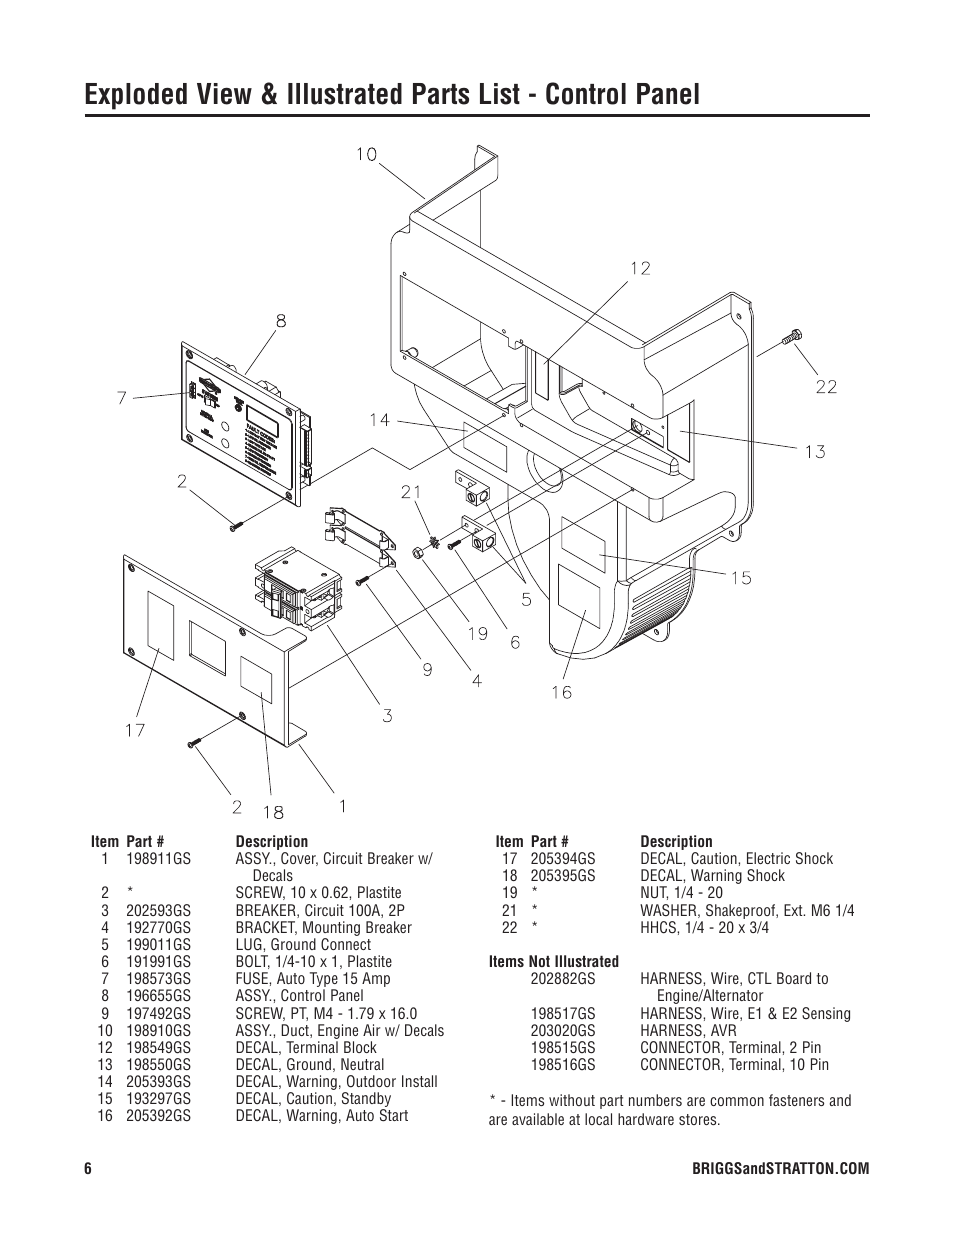 Briggs Stratton 040228 1 User Manual Page 6 7 10 0 Motor Wiring Diagram